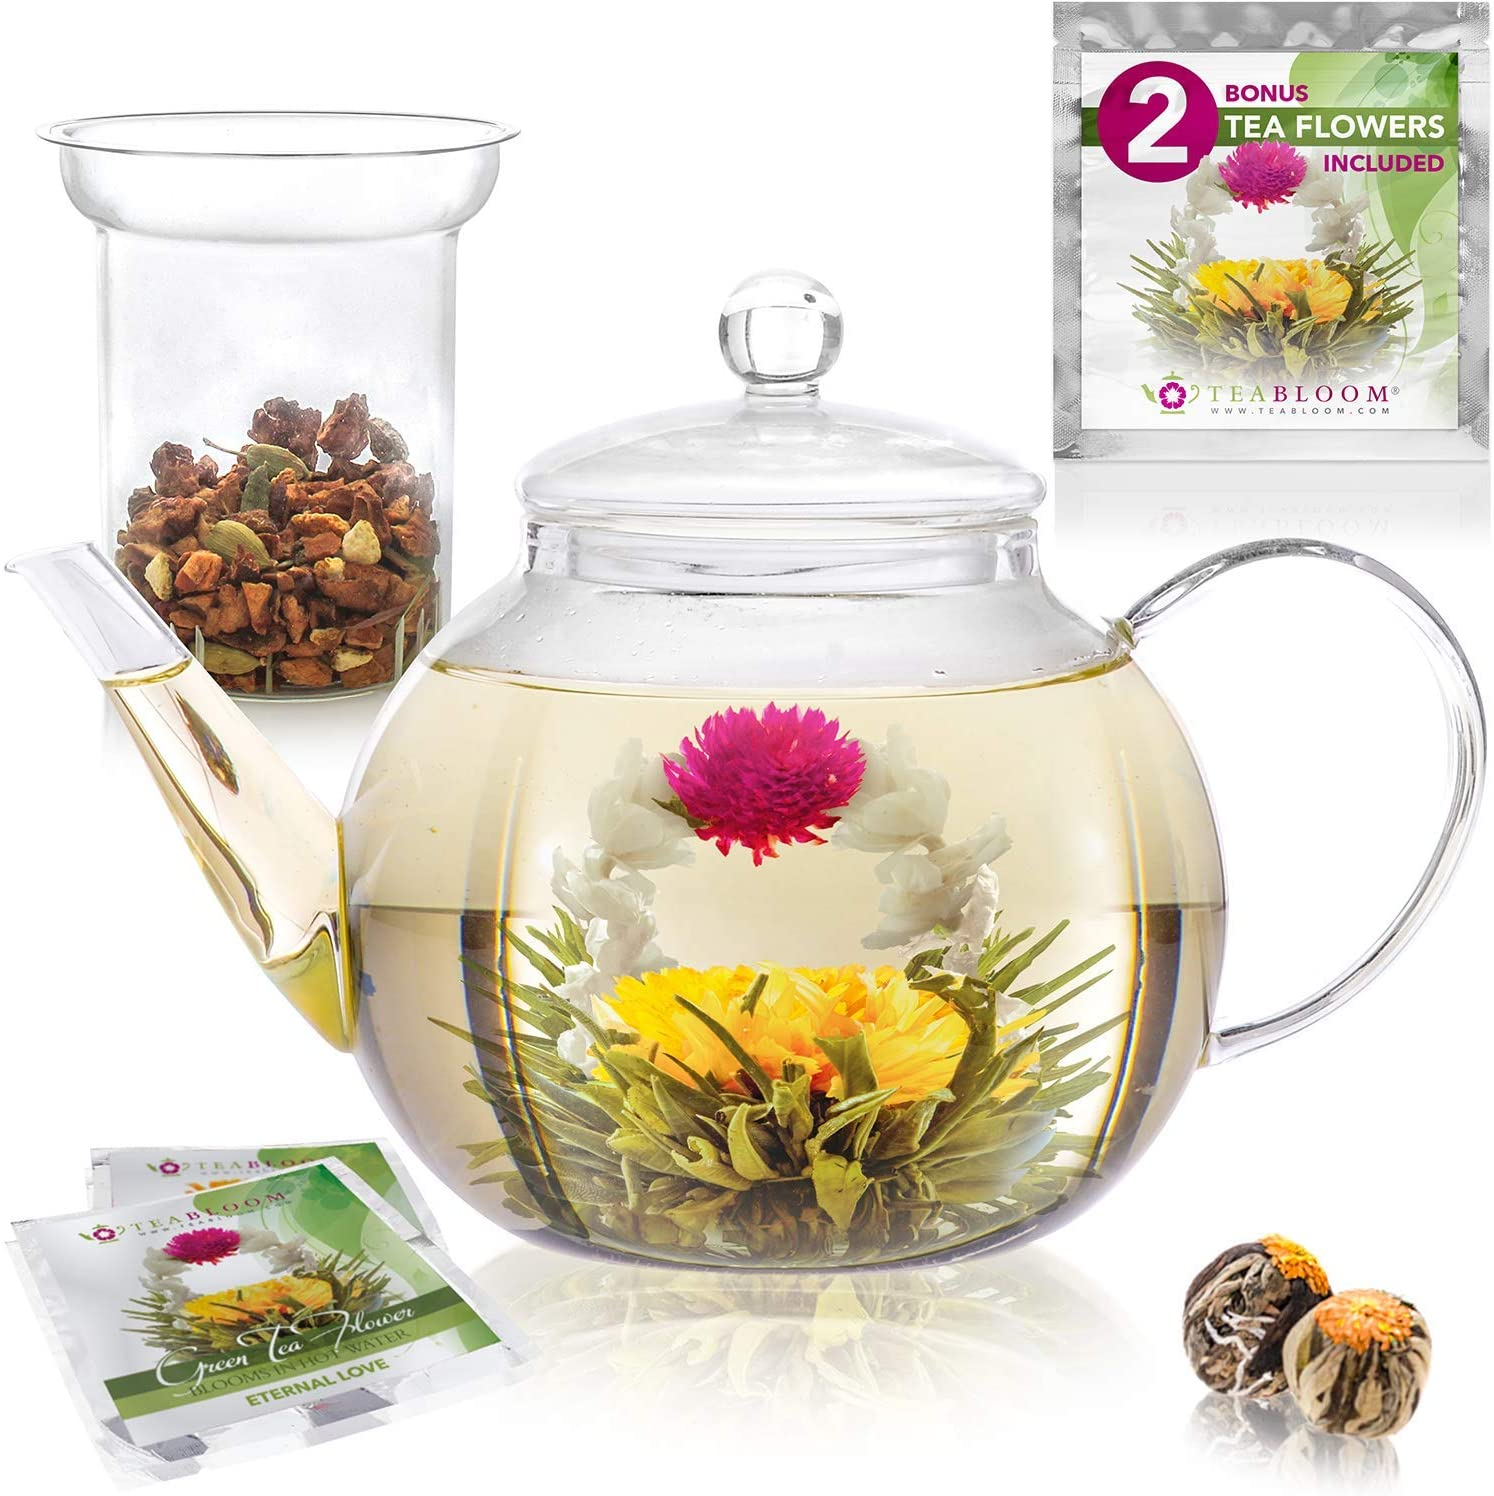 Teabloom Stovetop & Microwave Safe Glass Teapot (40 OZ / 1.2 L) with Removable Loose Tea Glass Infuser – Includes 2 Blooming Teas – Premium Quality Teapot Gift Set